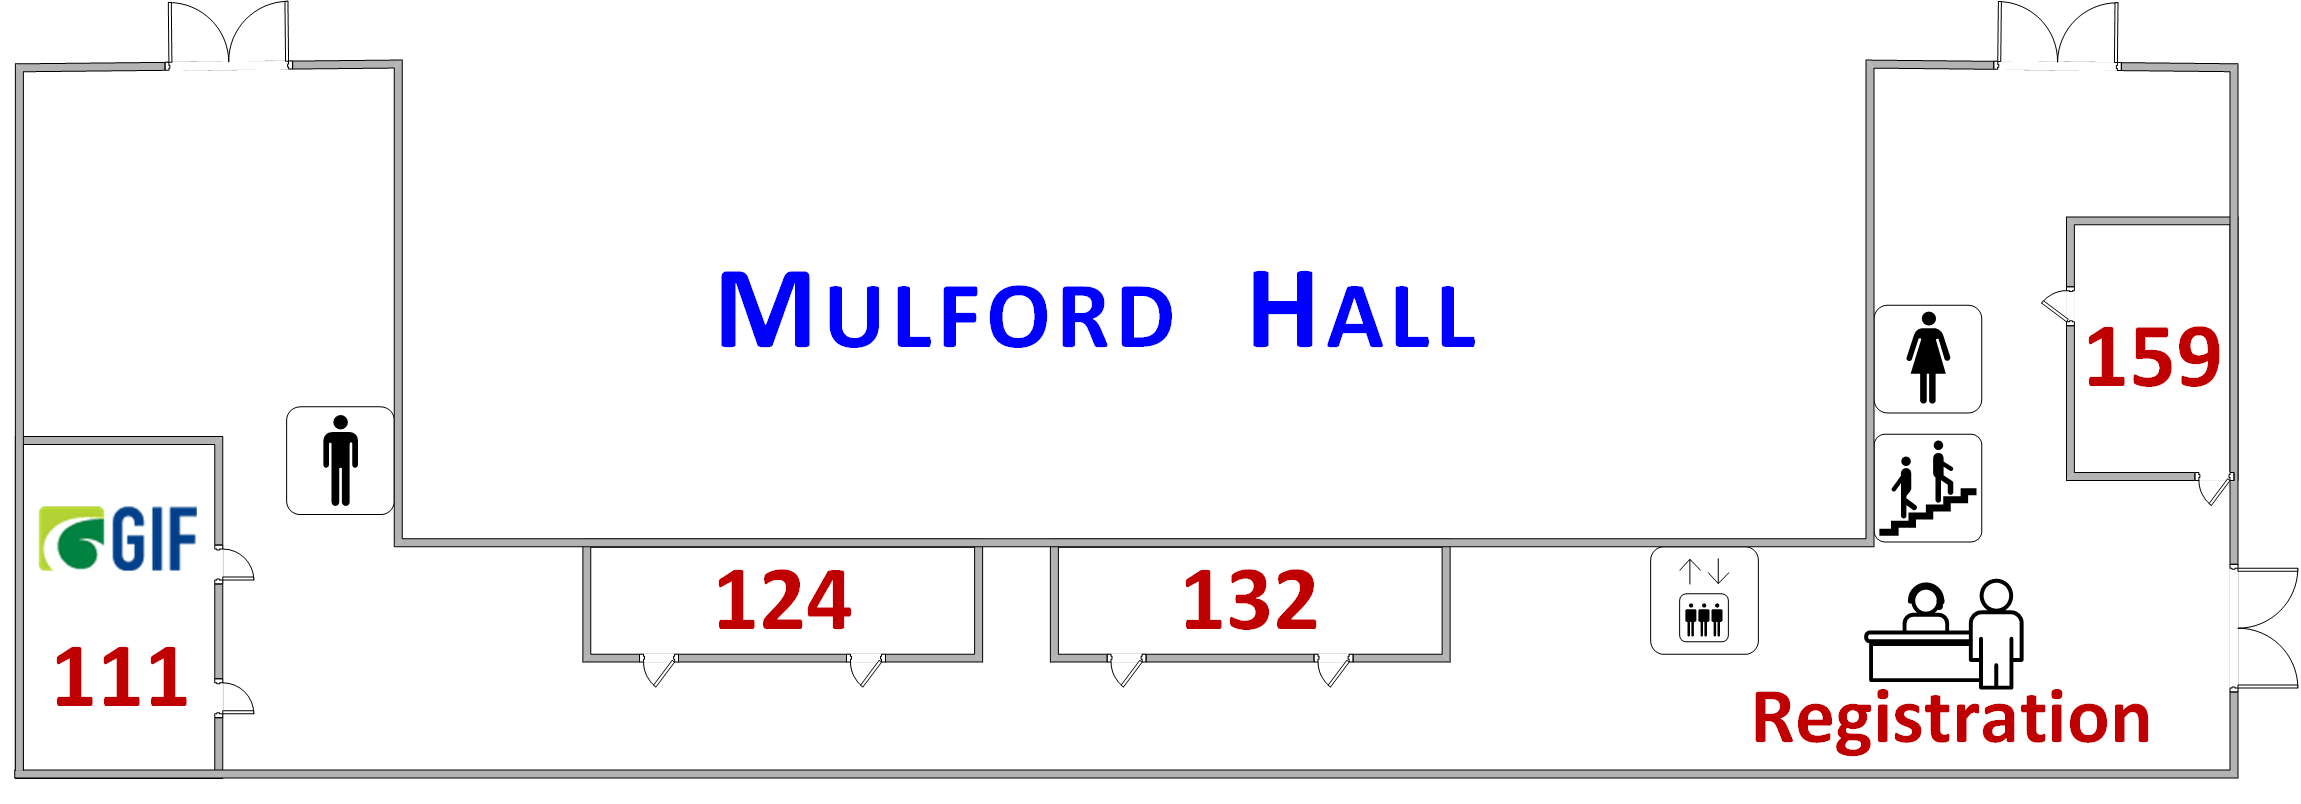 Mulford Hall diagram